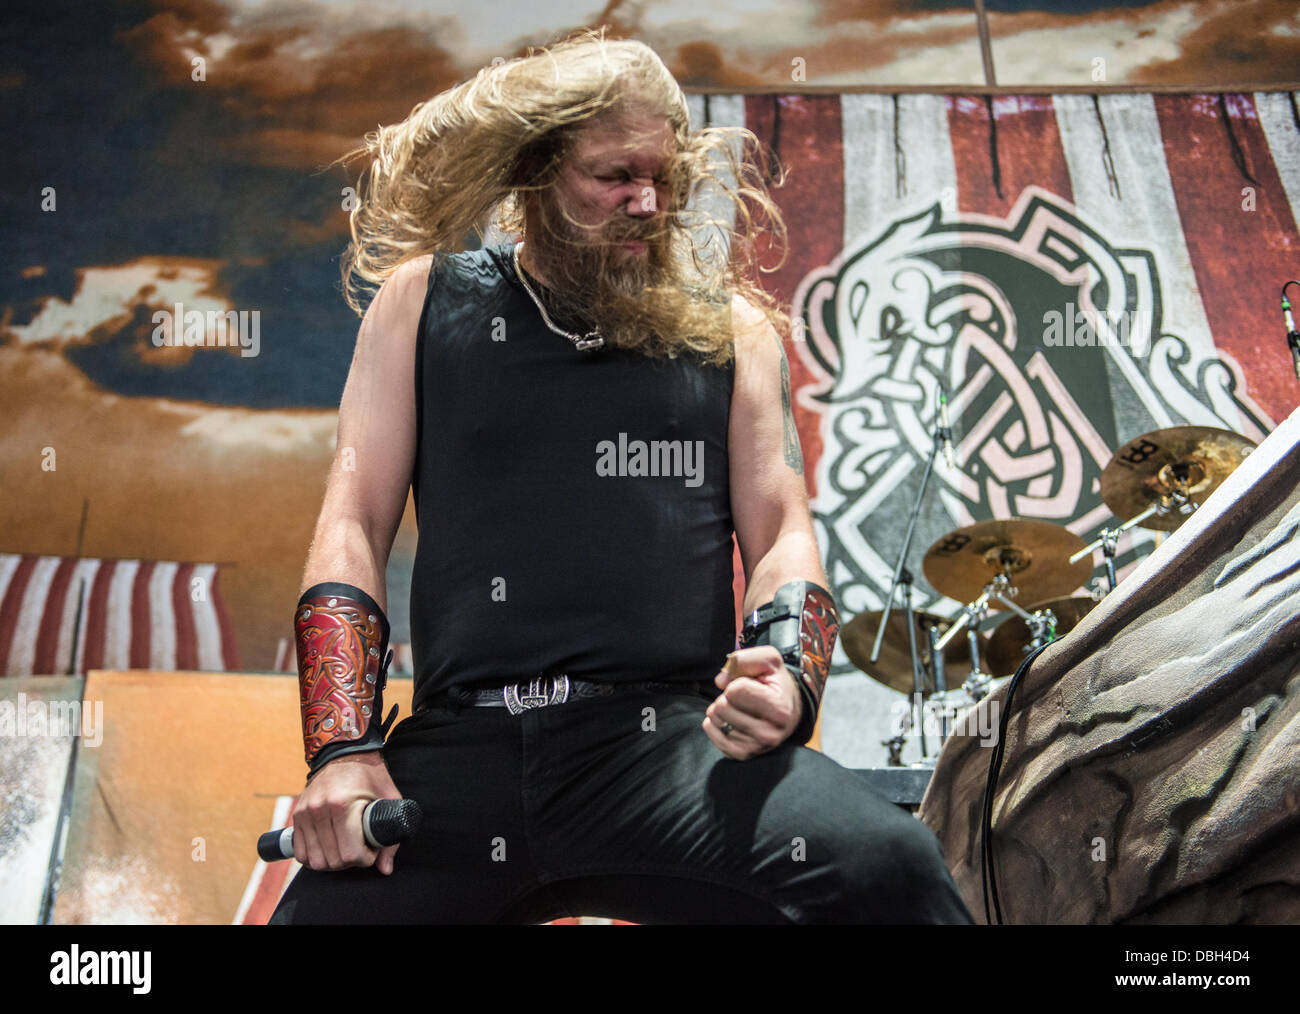 Swedish heavy metal band Amon Amarth performing live a Mayhem Fest 2013. Amon Amarth è un intreccio melodico Immagini Stock